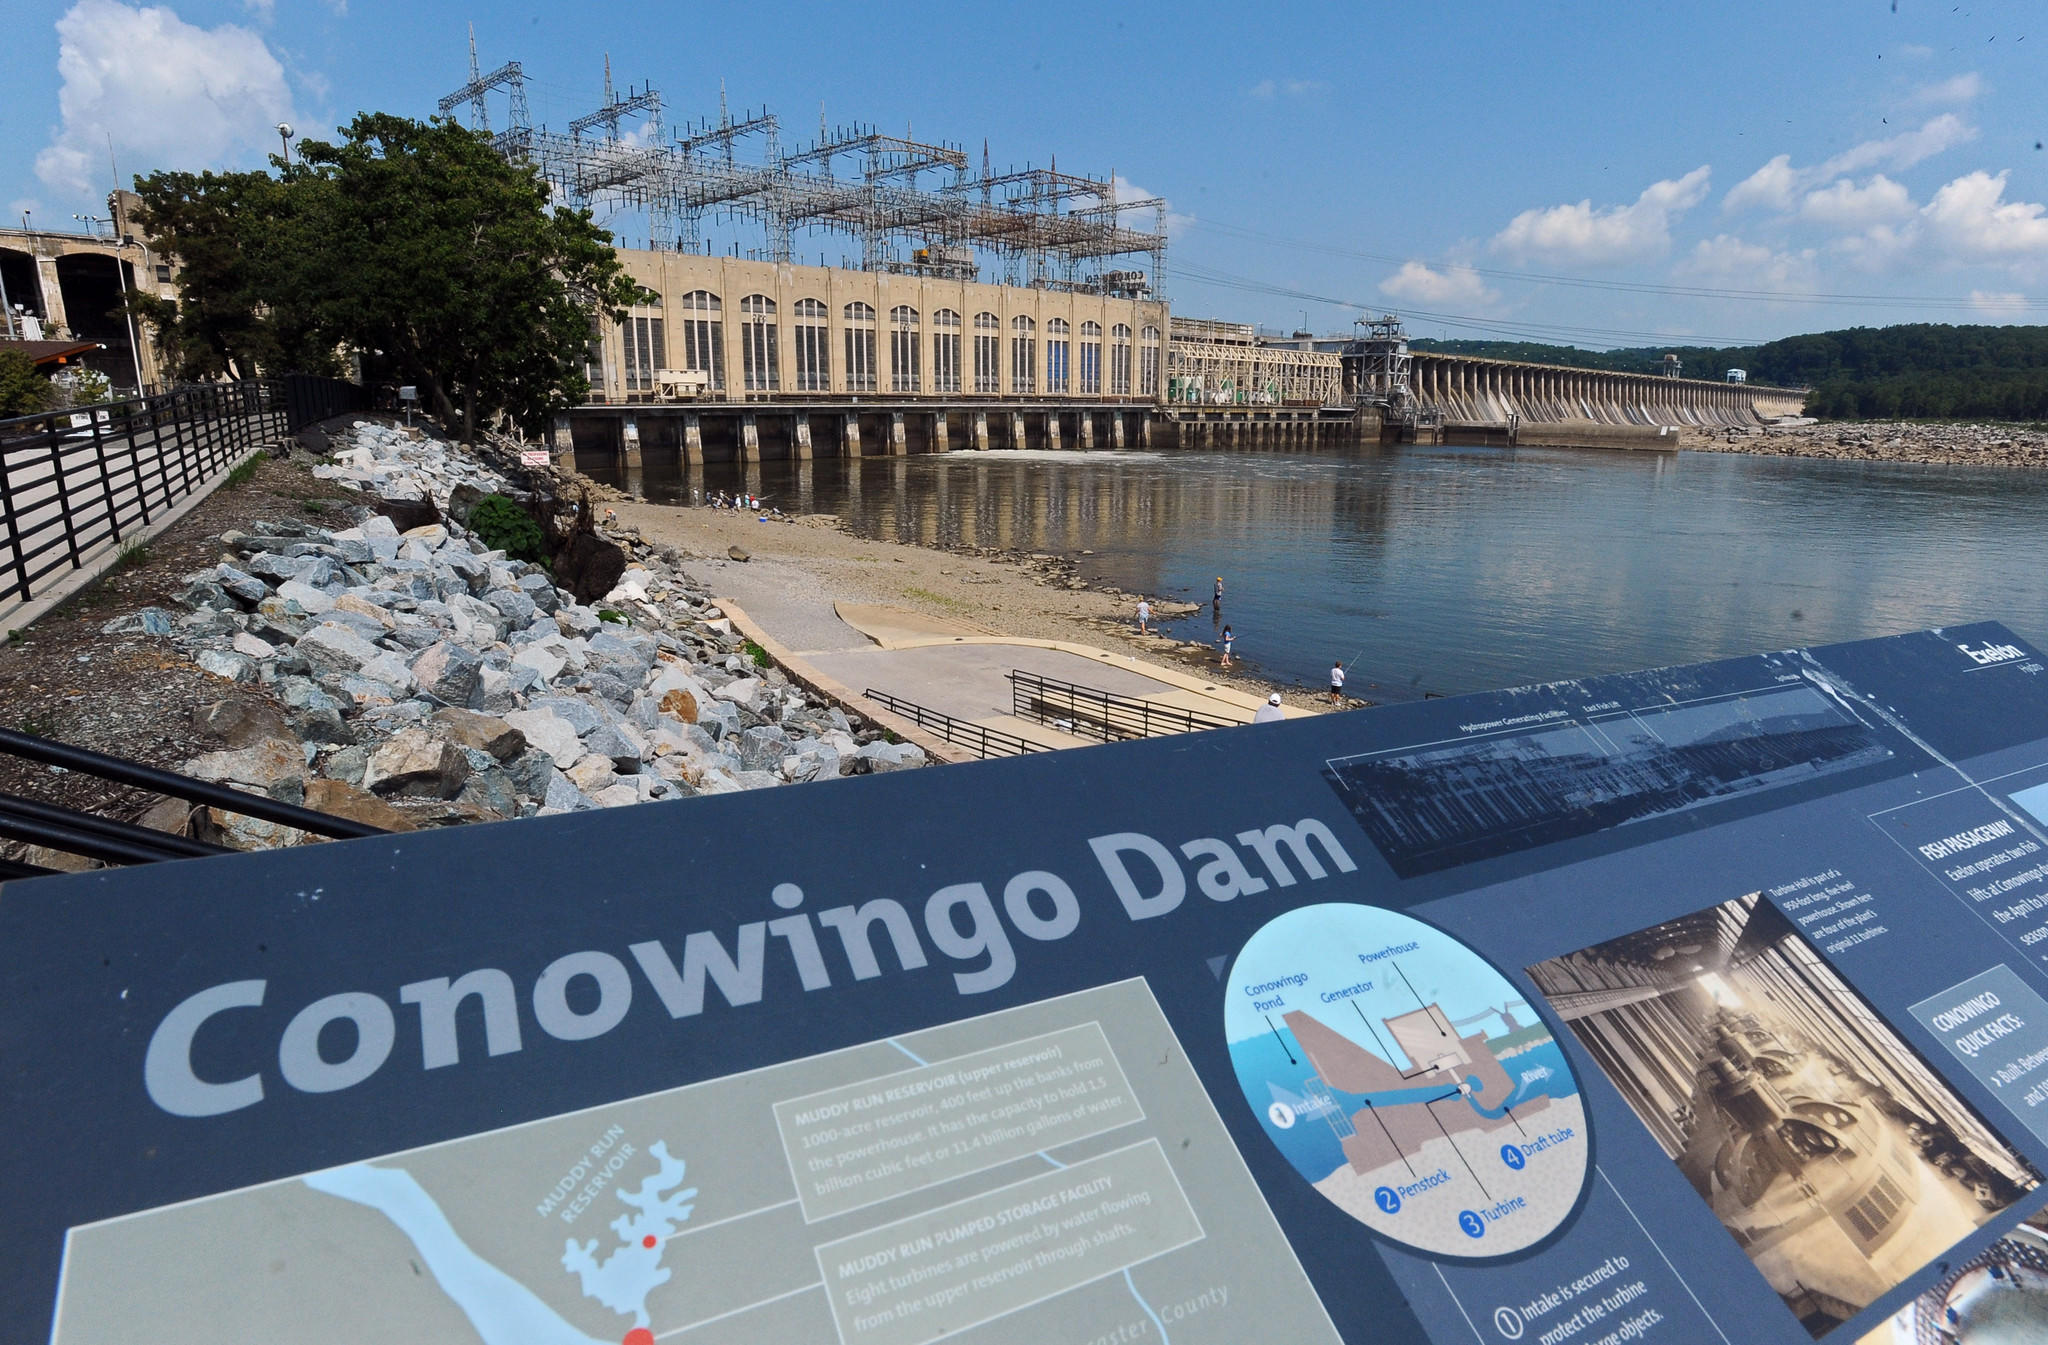 Aug. 5: On a hot summer day, it's hard to see how the Conowingo Dam could hurt the Chesapeake Bay. Anglers line the shore below the 94-foot high impoundment, casting out into the gently roiling Susquehanna River for rockfish breaking the water. Read the complete story.